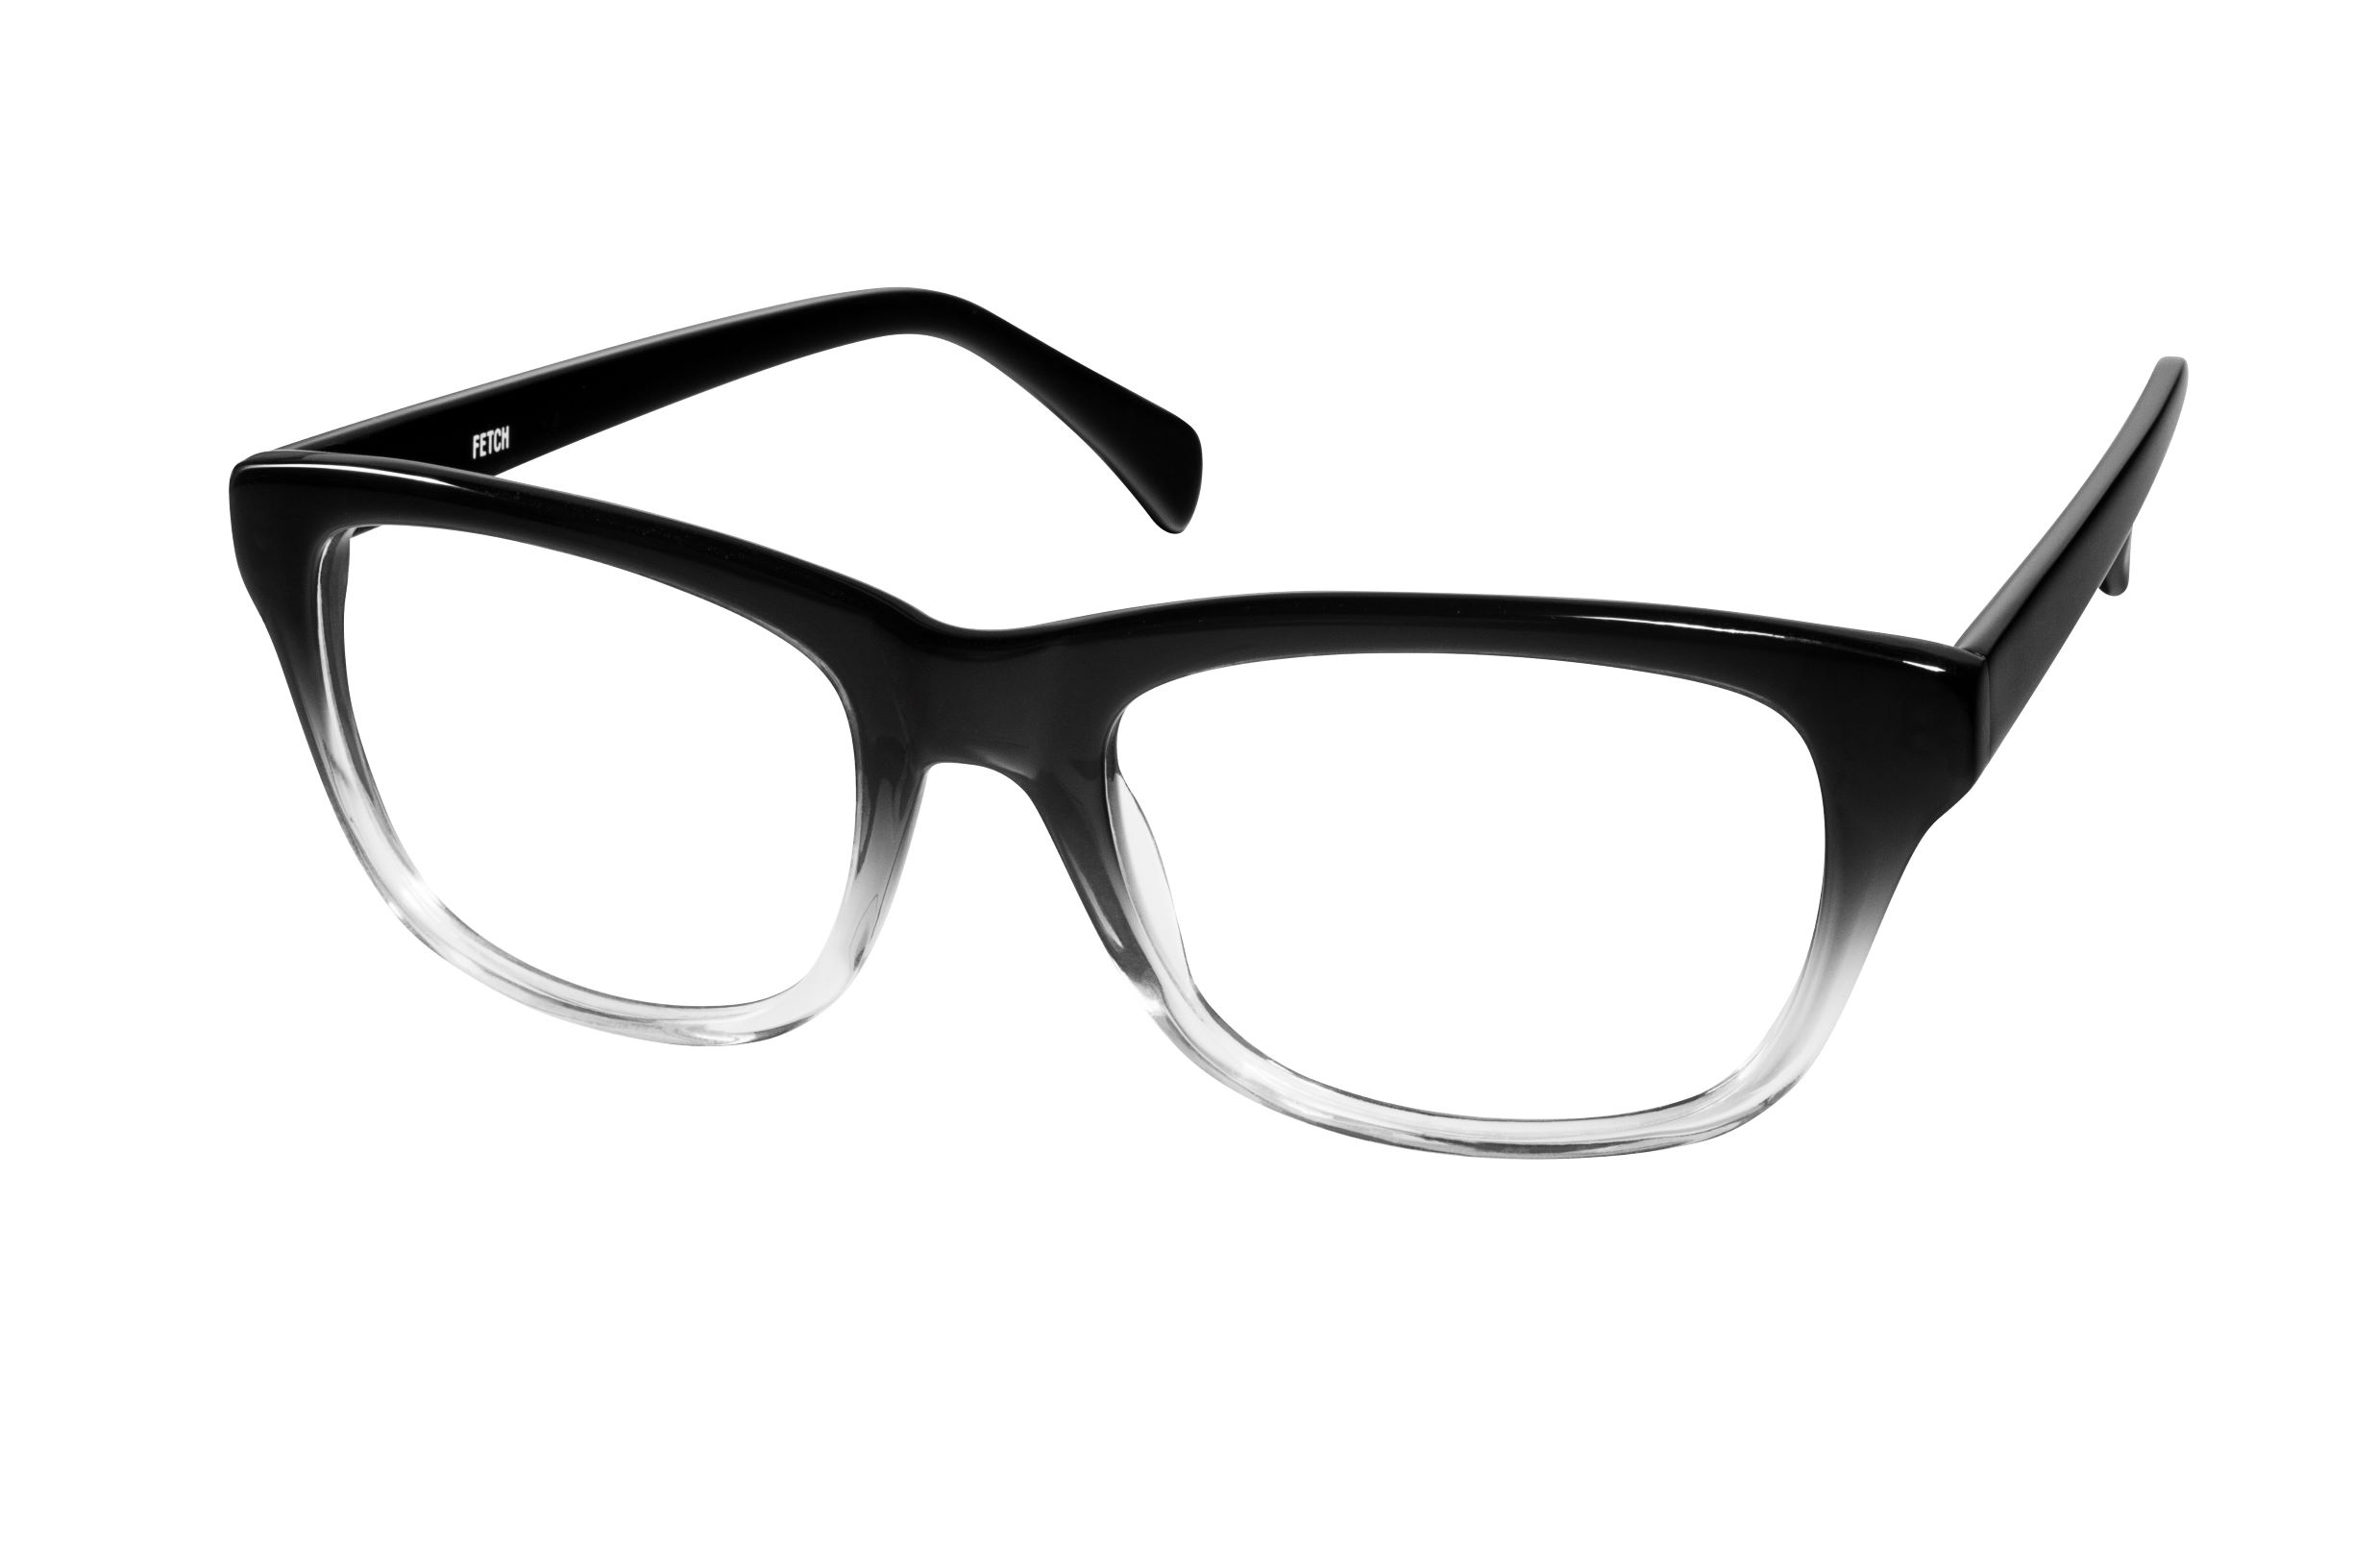 e33ae27b043 Find the Perfect Sized Glasses For Your Face